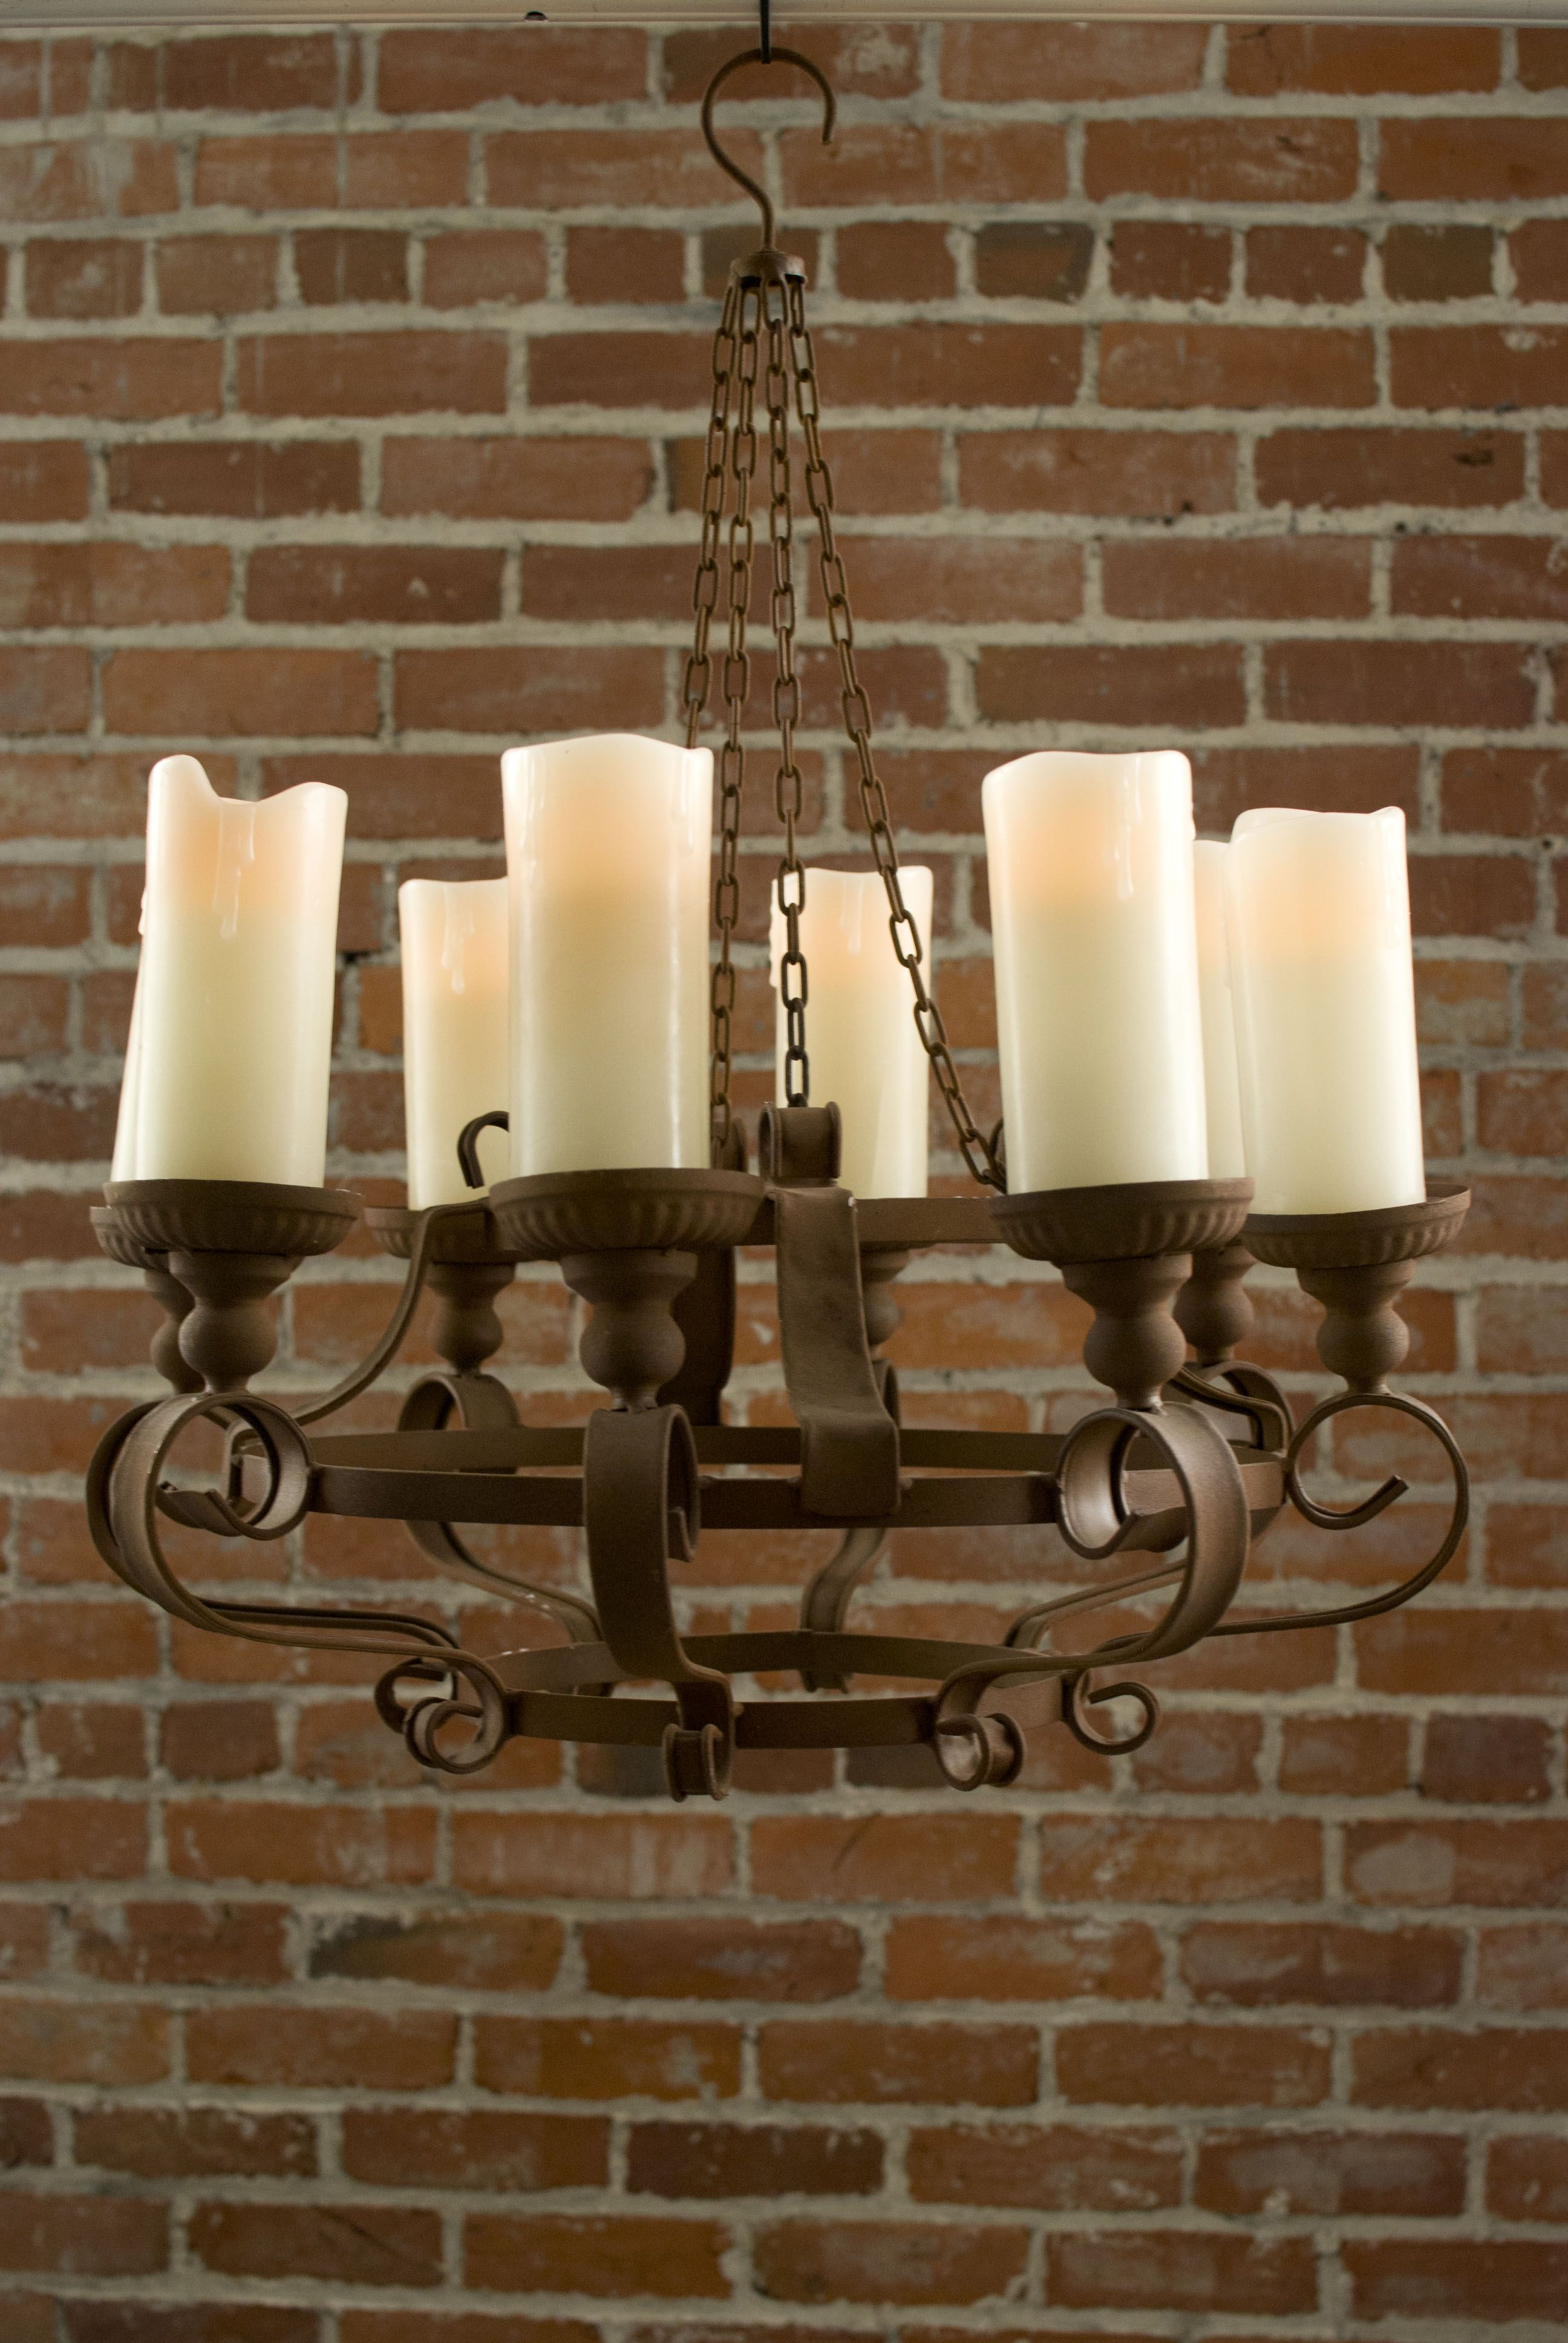 rustic chandeliers with battery powered led candles. no power